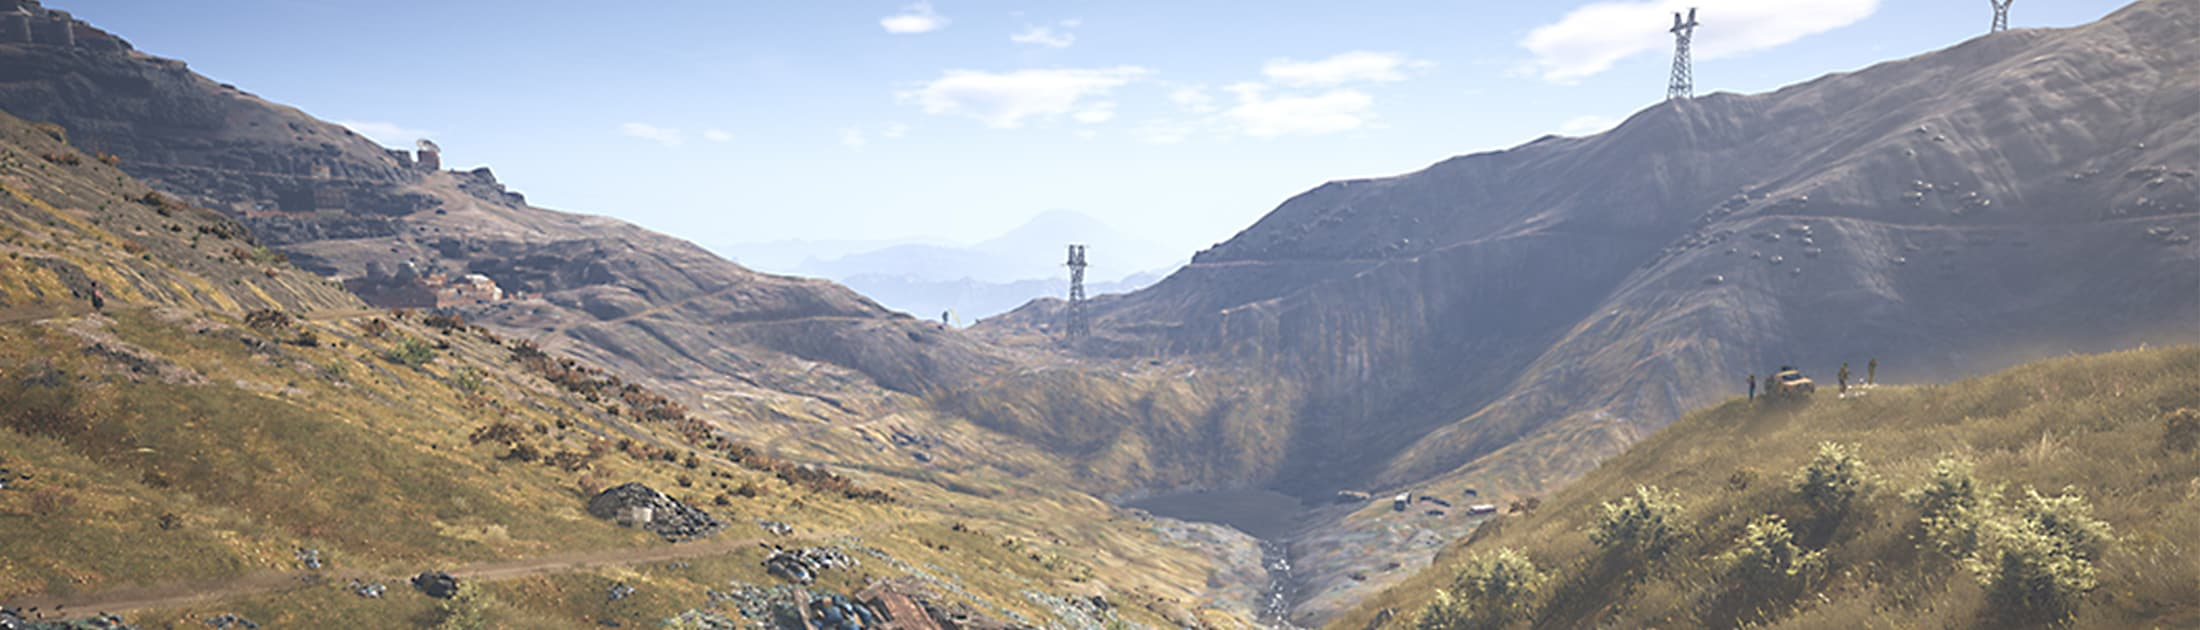 GRW_Header_Screenshot_Selection_2200x630